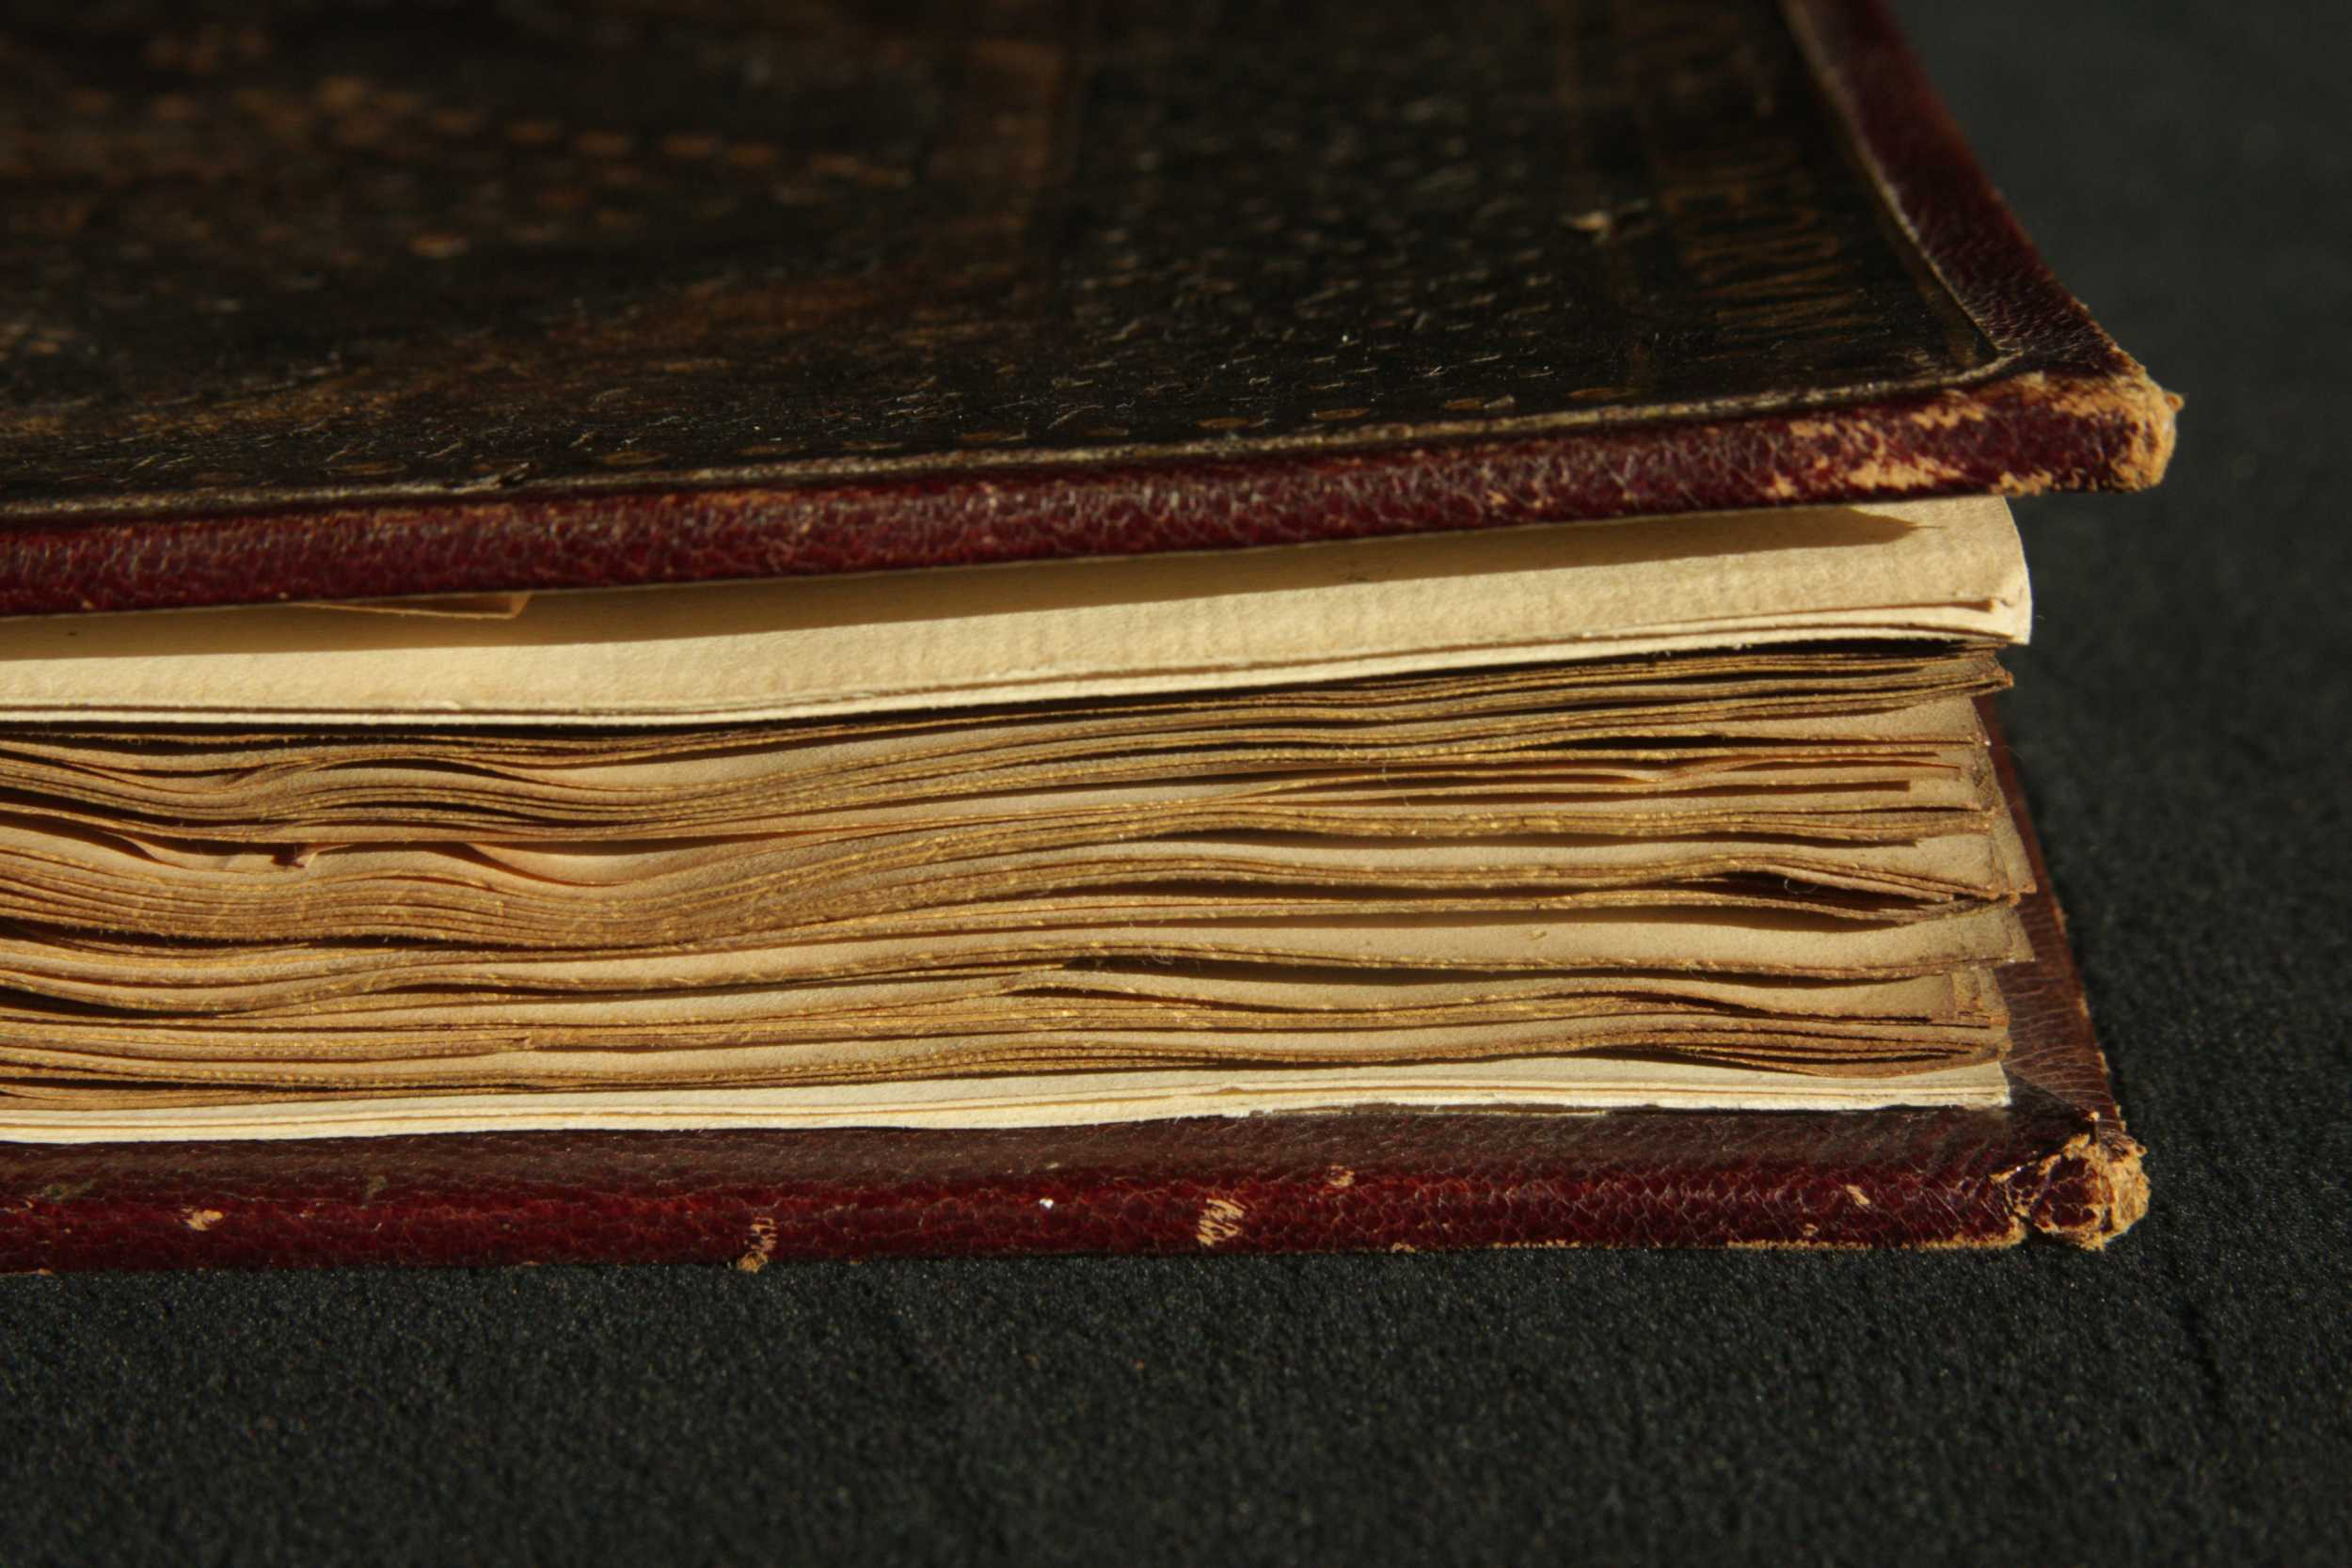 Gilded and gauffered fore-edge